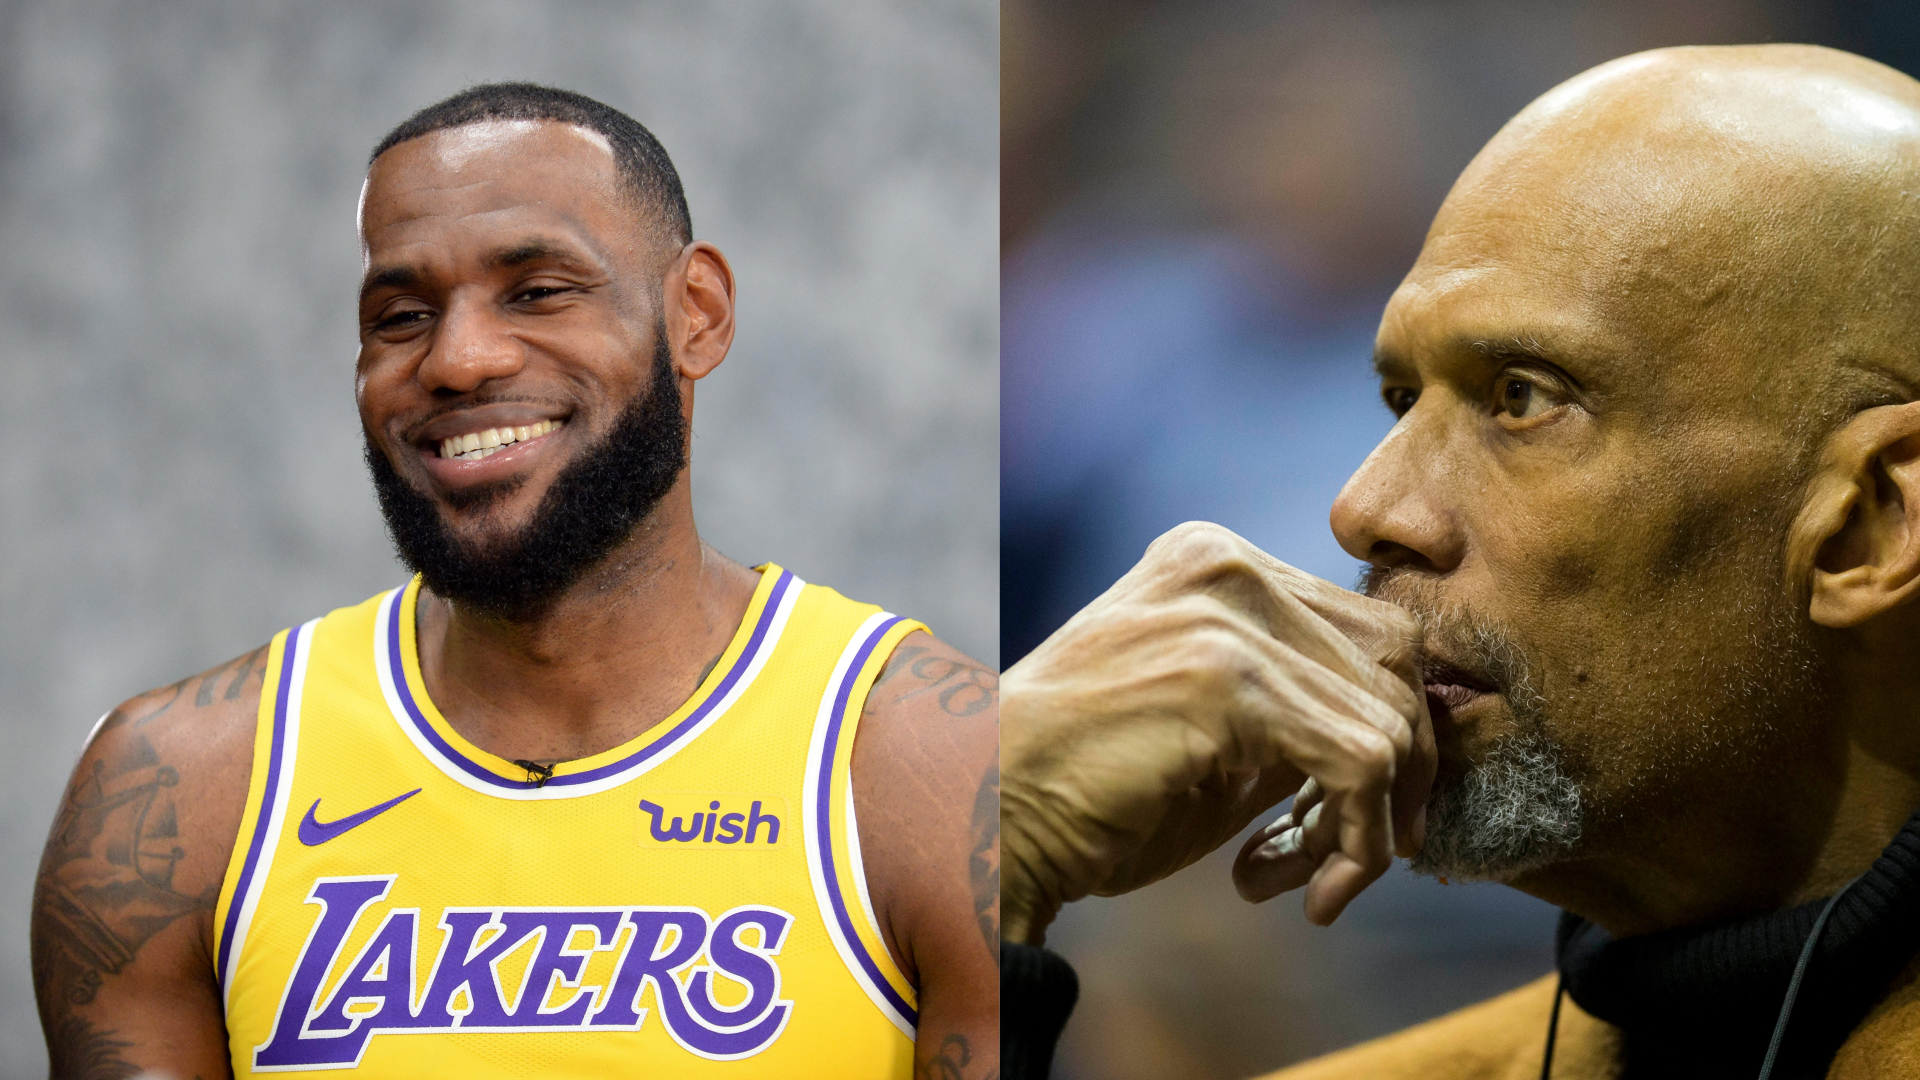 Kareem Abdul-Jabbar discusses what LeBron James can expect from Lakers fans